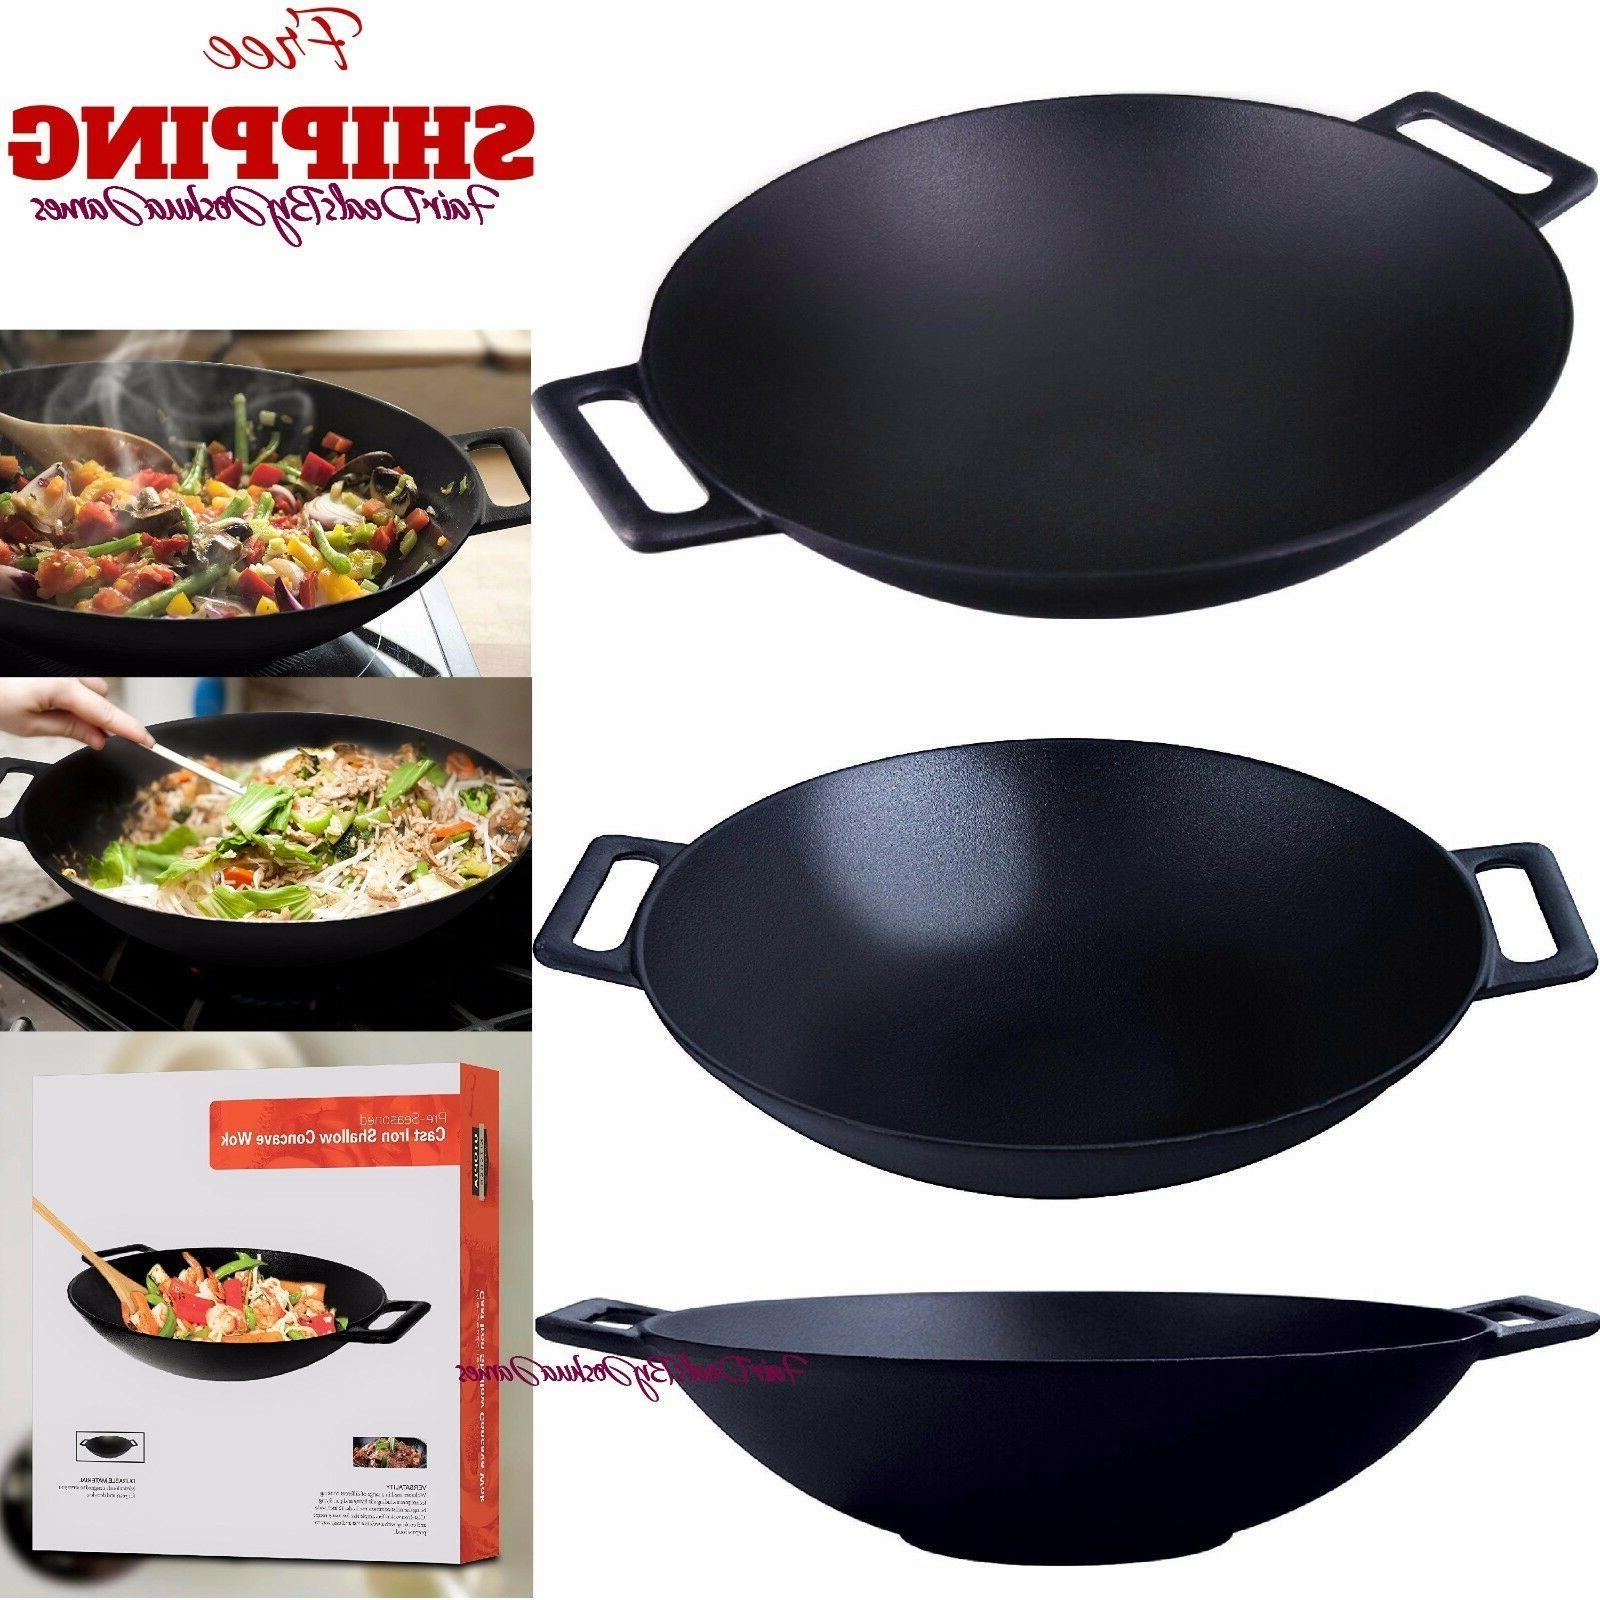 Cast Shallow Concave Wok, by Utopia